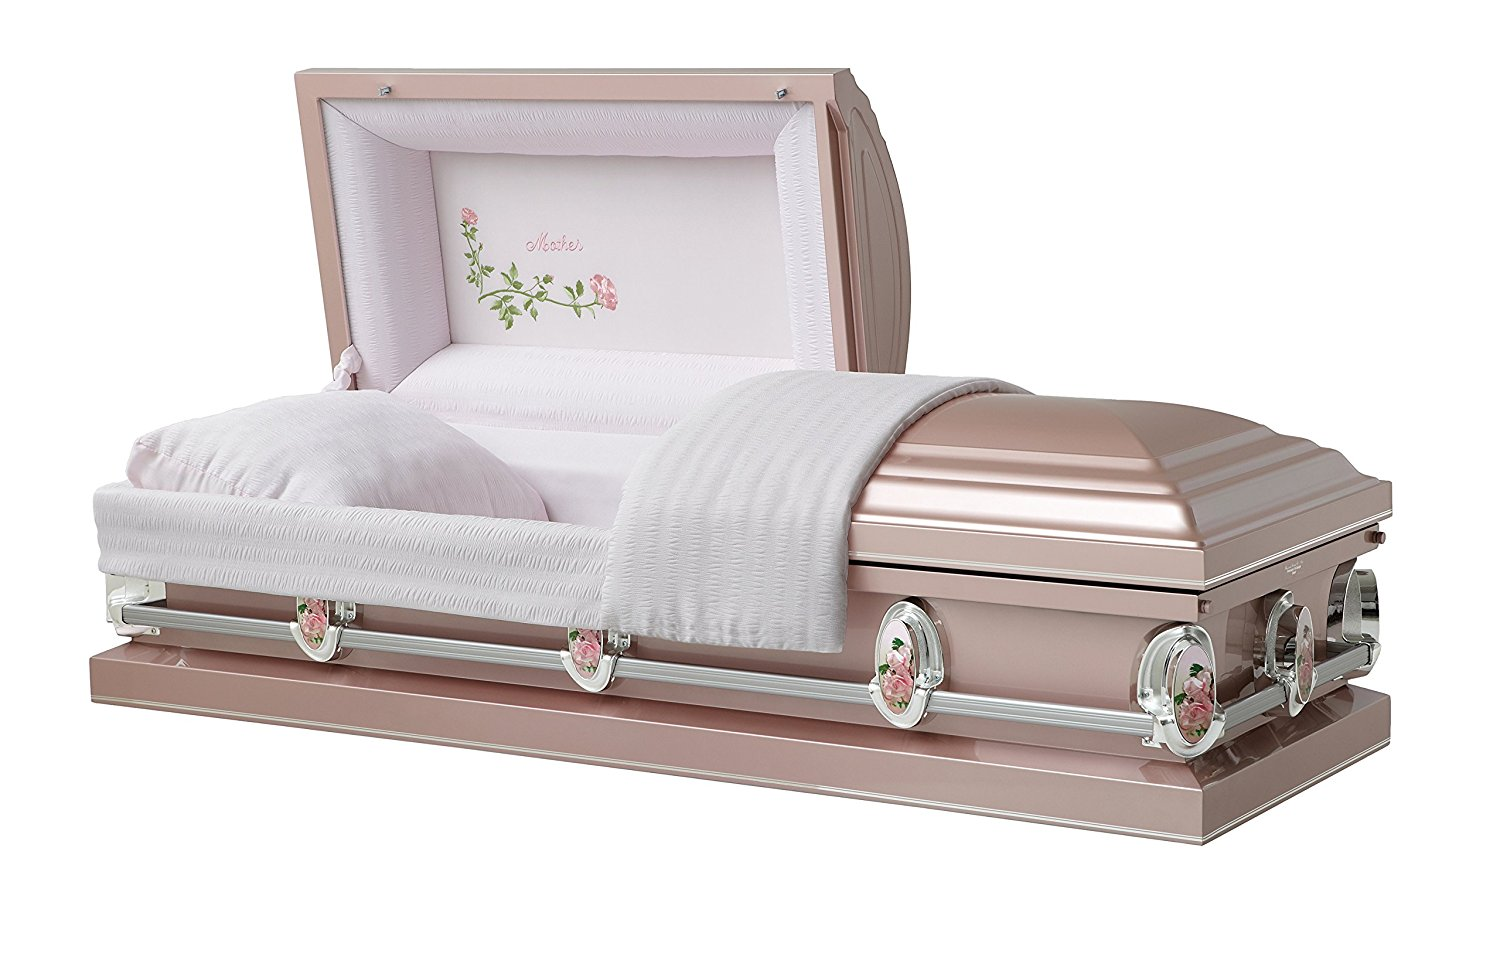 Luxury Metal Casket with Roses